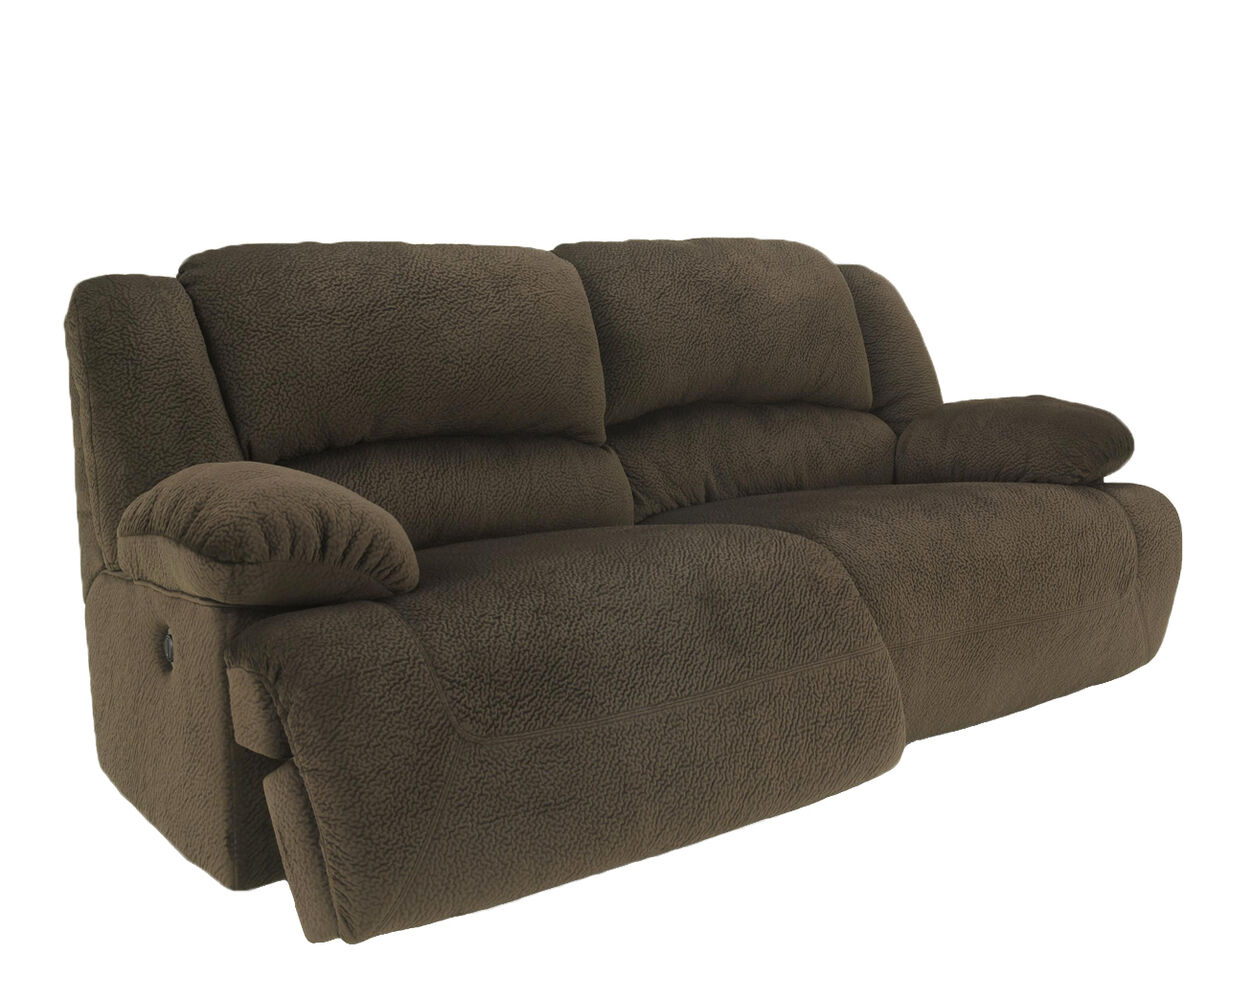 Microfiber 96 Reclining Sofa In Chocolate Mathis Brothers Furniture